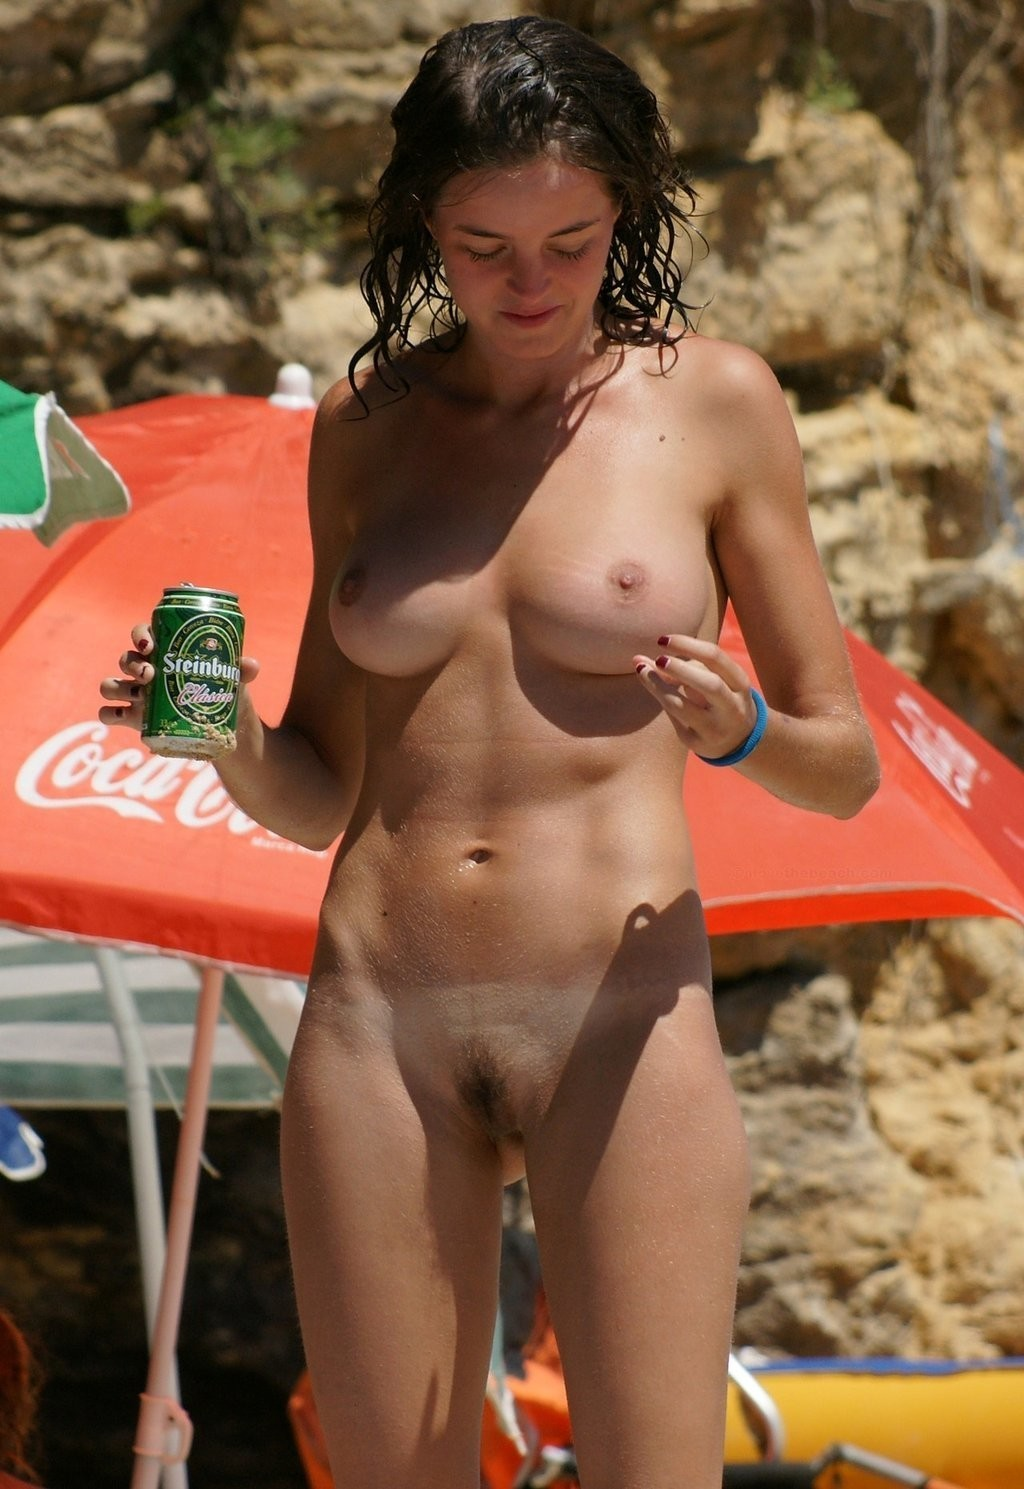 nudists-girls-boobs-beach-topless-mix-vol7-46